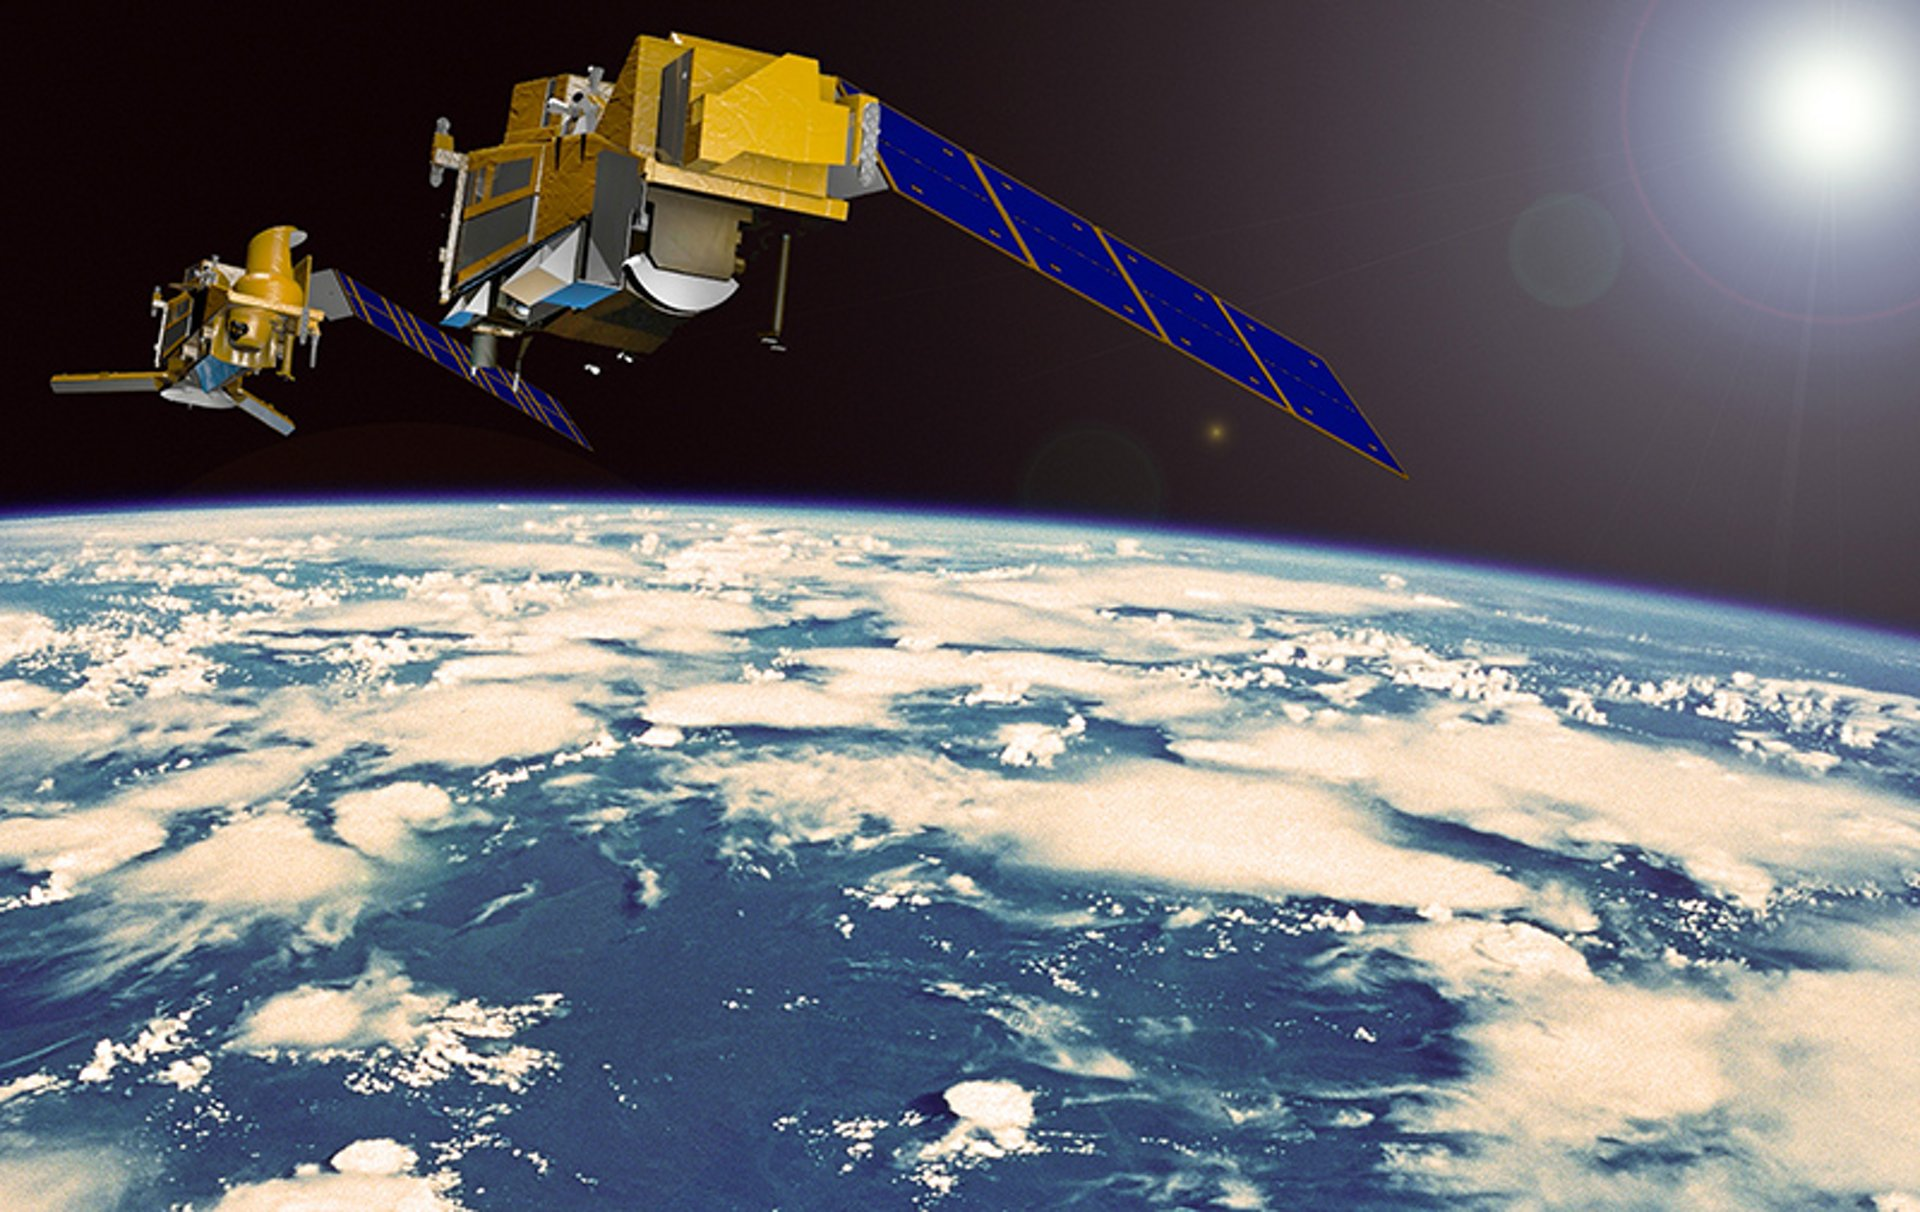 MetOp-SG satellites to provide advanced meteorological data across the entire globe